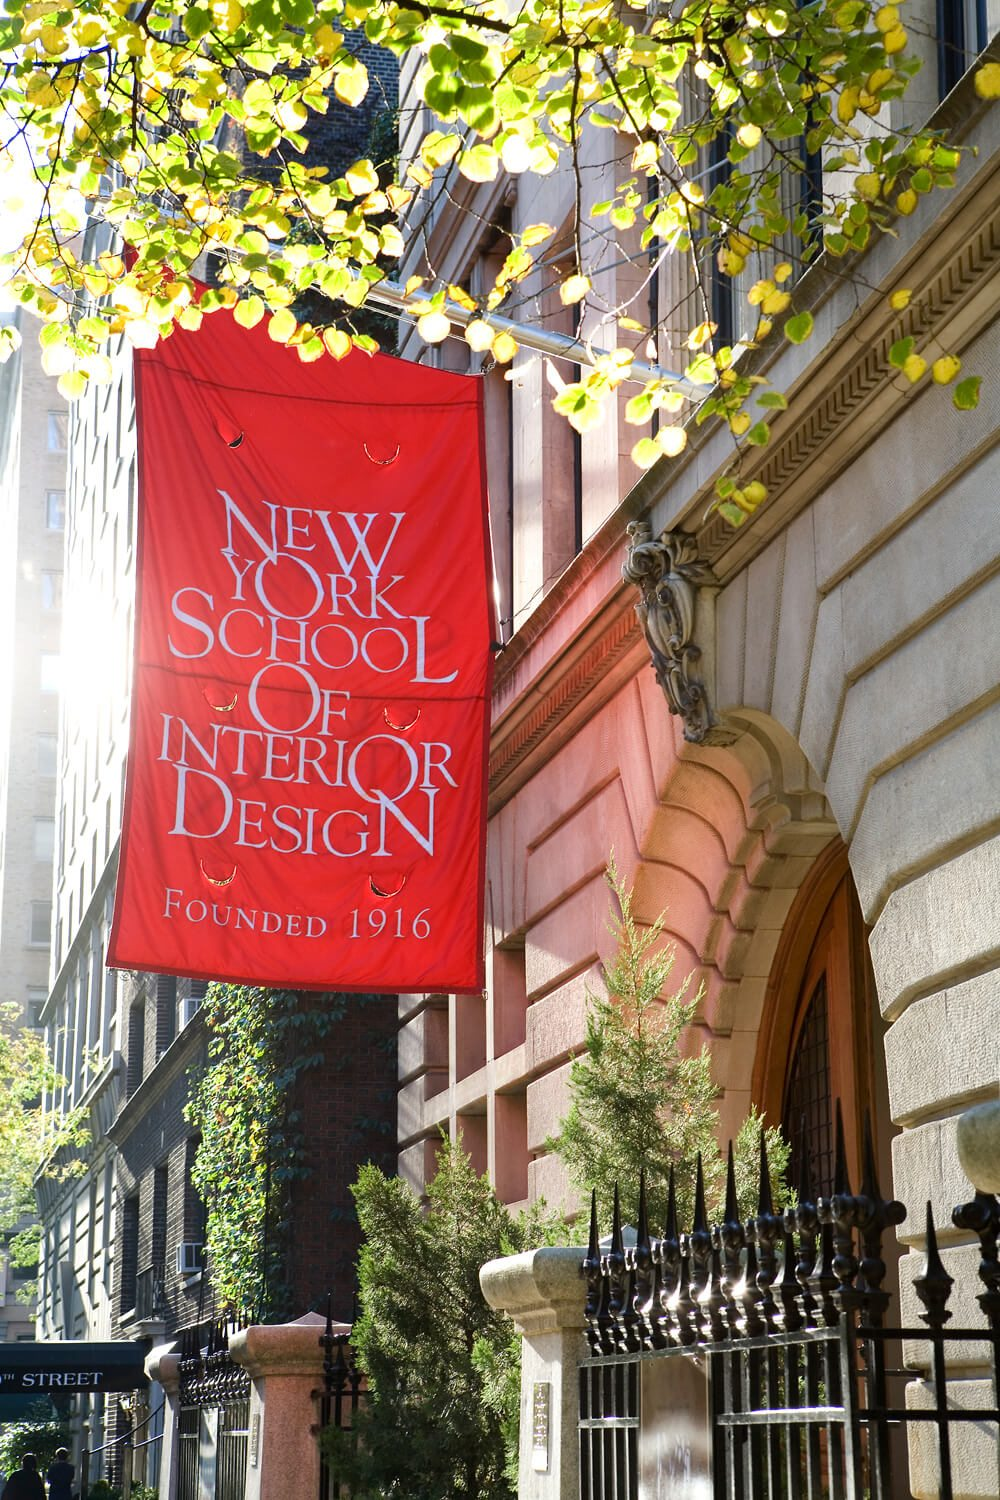 top 10 interior design schools in the u s degreequery com rh degreequery com new york school of interior design online new york school of interior design reviews